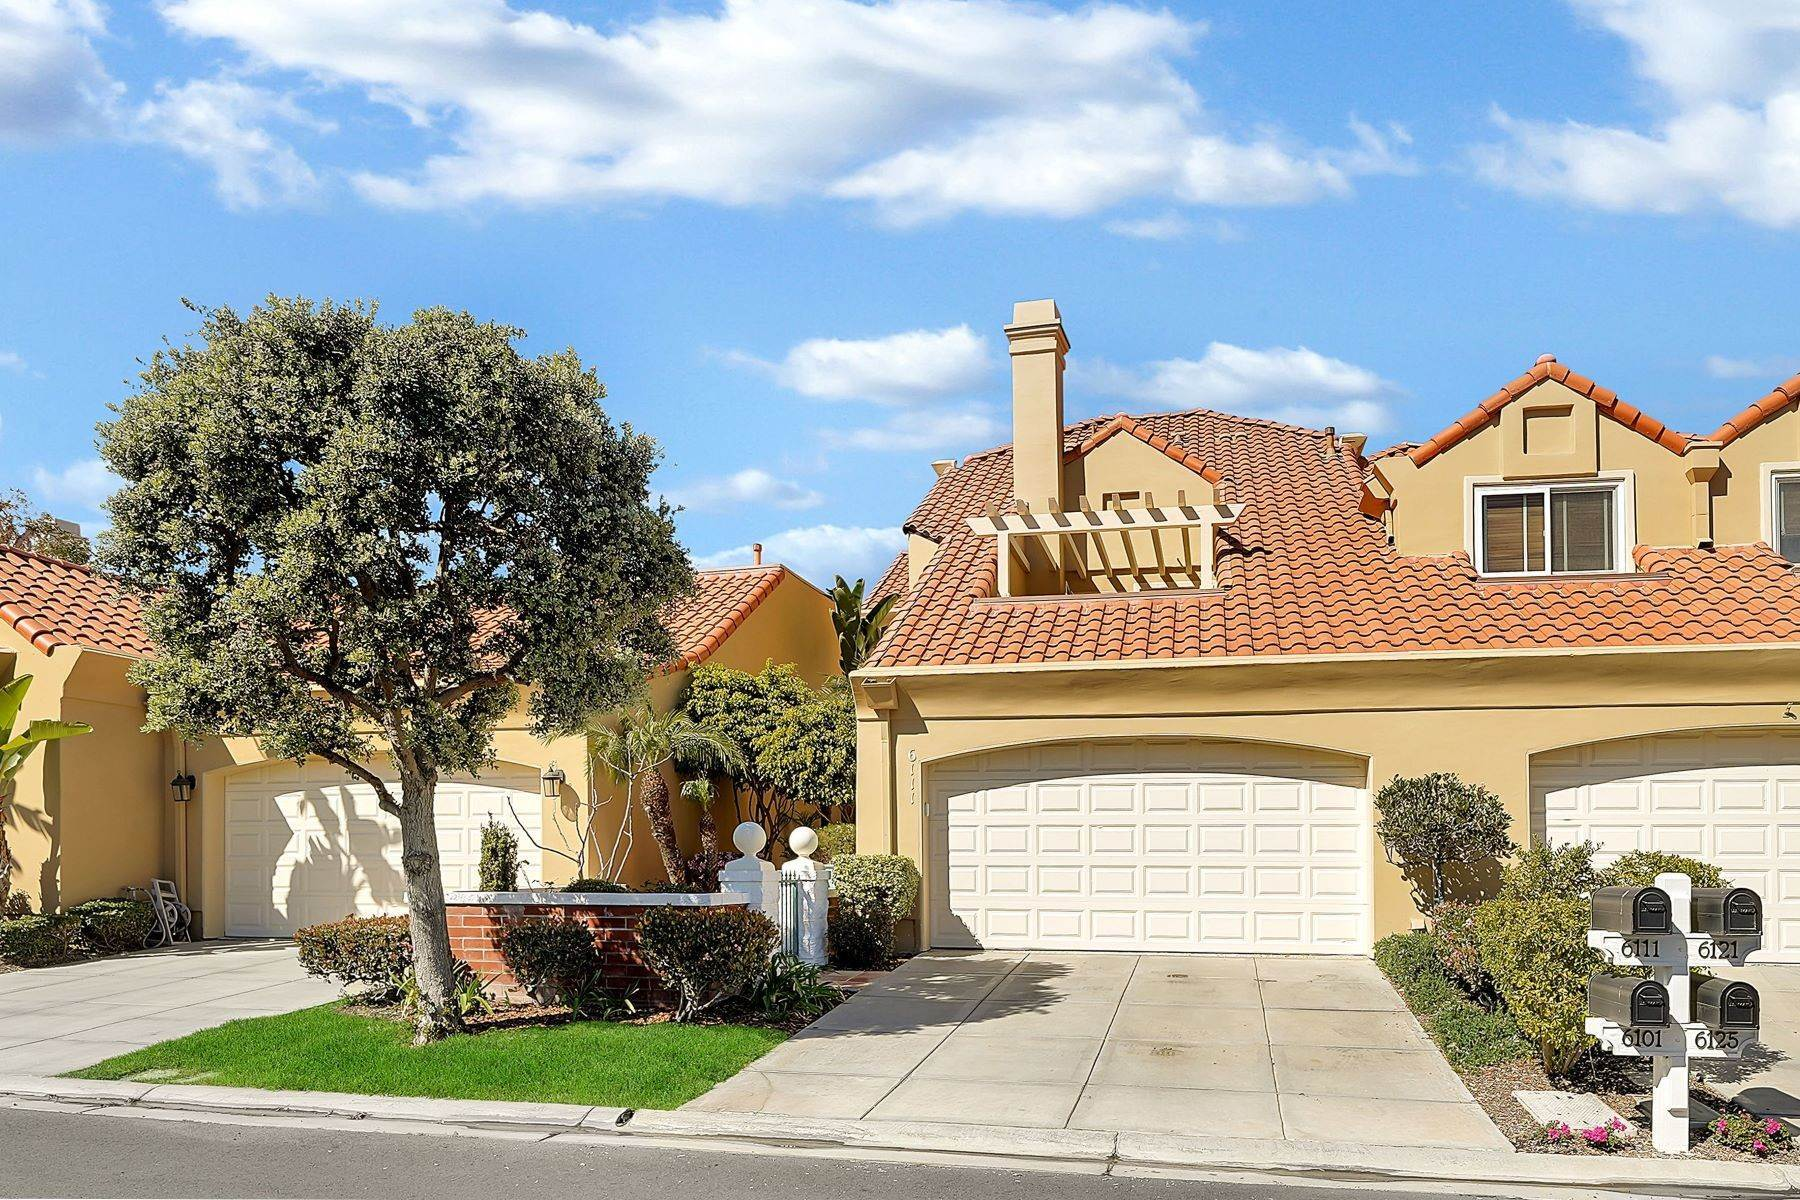 Single Family Homes for Sale at 6111 Greenbrier Drive Huntington Beach, California 92648 United States